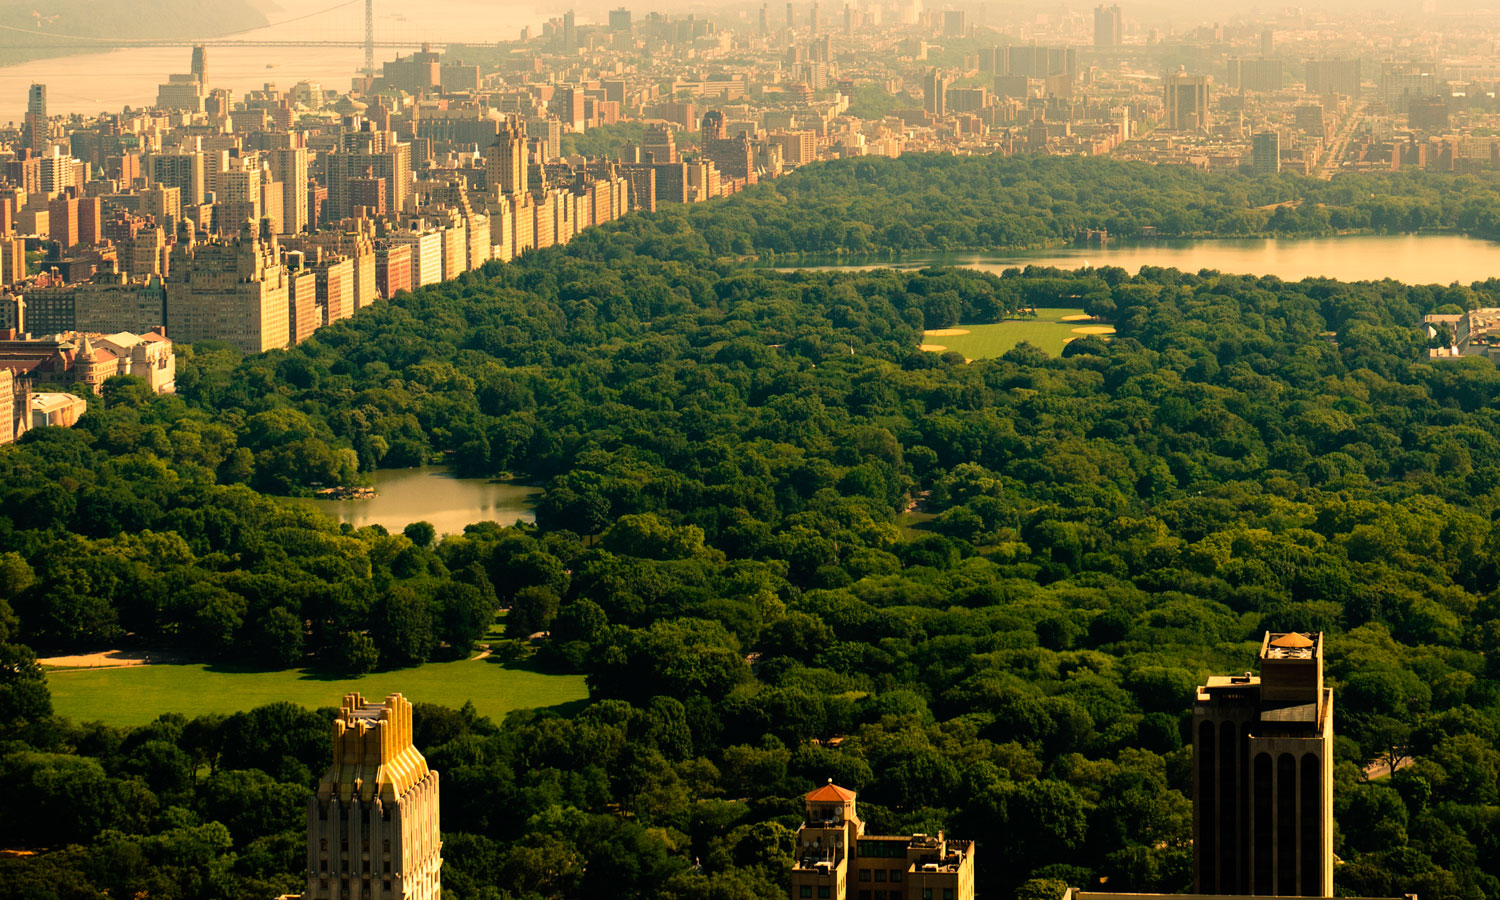 File Name 991750 Central Park High Quality Wallpaper 991750 1500x900